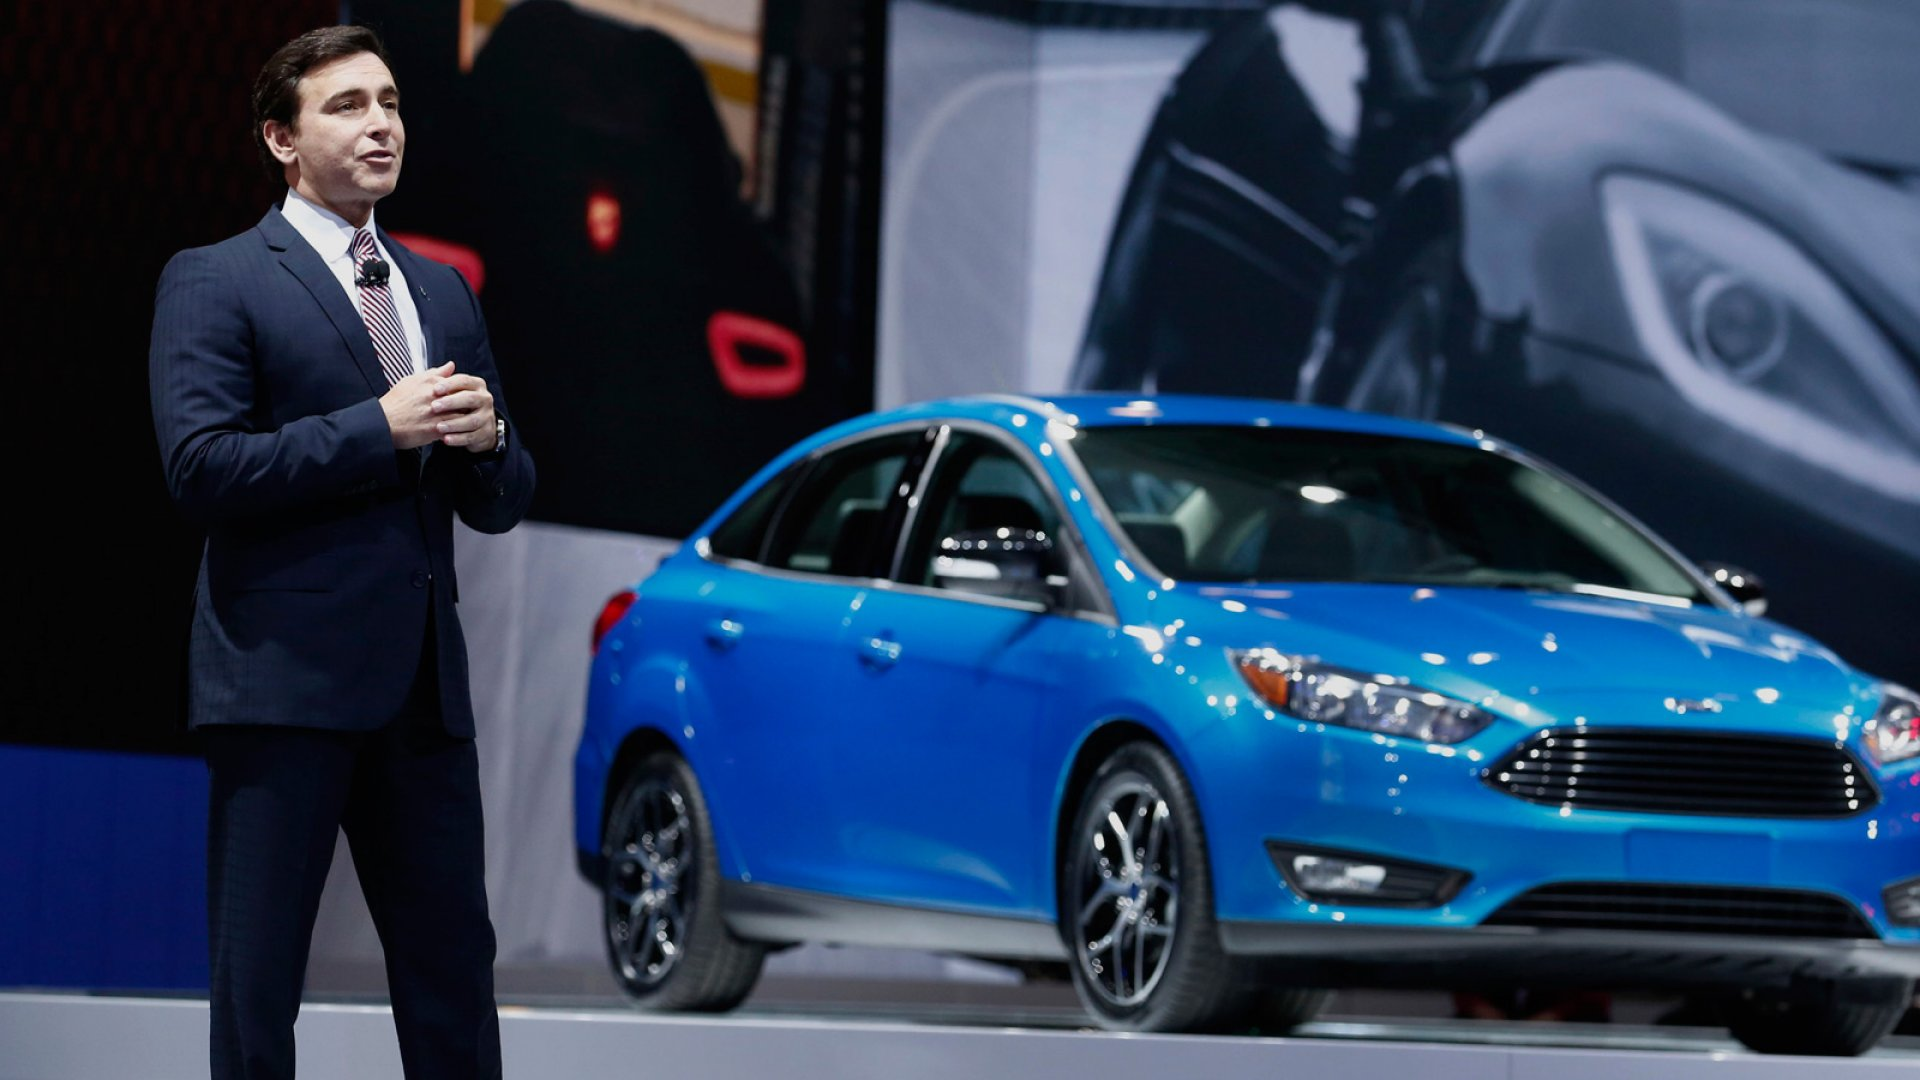 What You Can Learn From Ford's Plans to Disrupt Itself